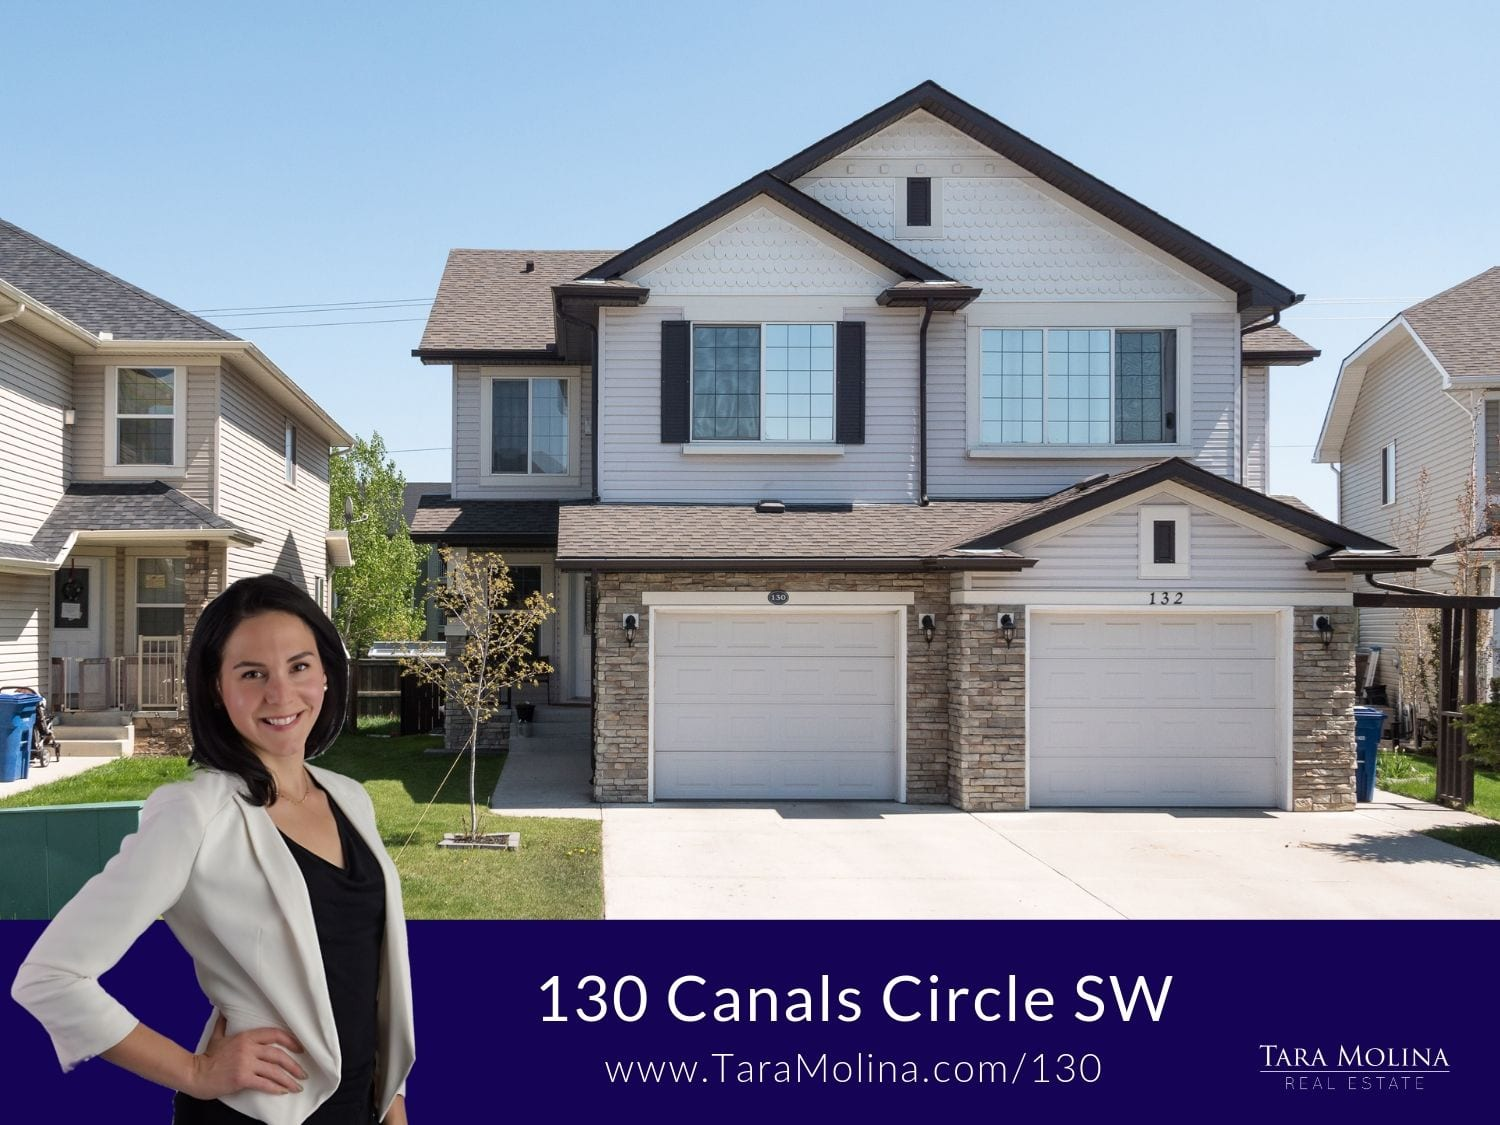 130 Canals Circle SW .